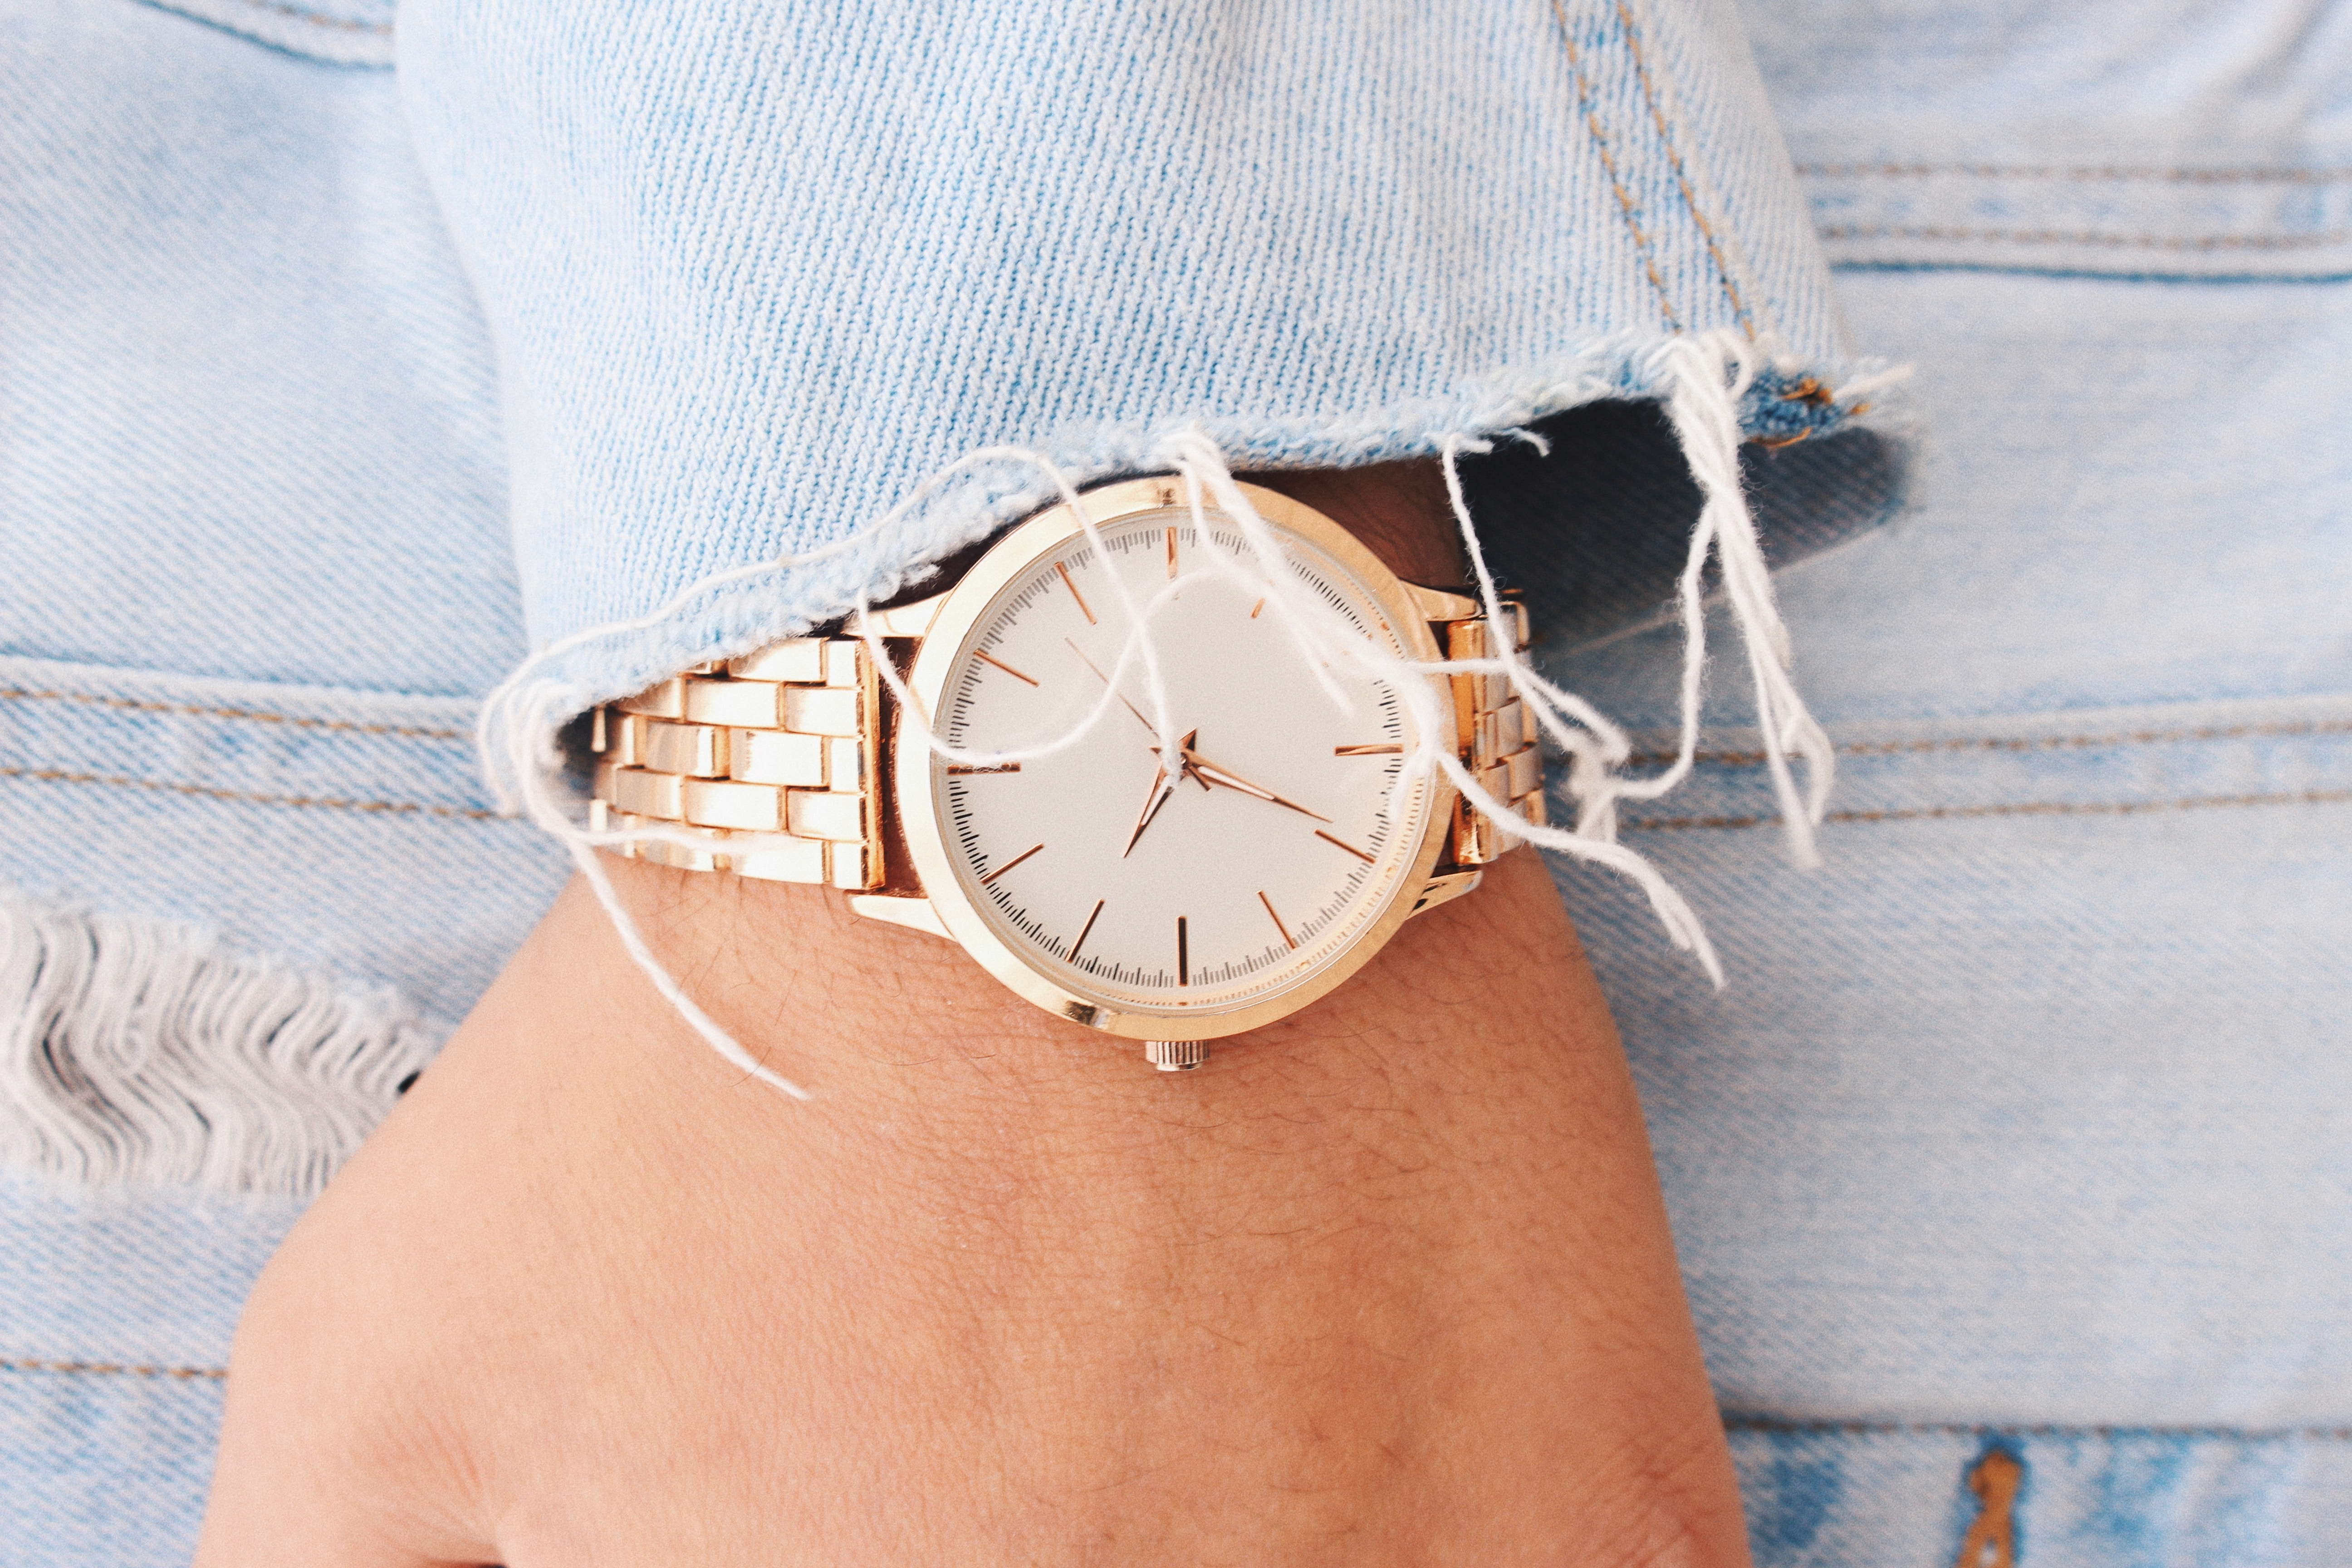 How to Make Money with Wholesale Watches